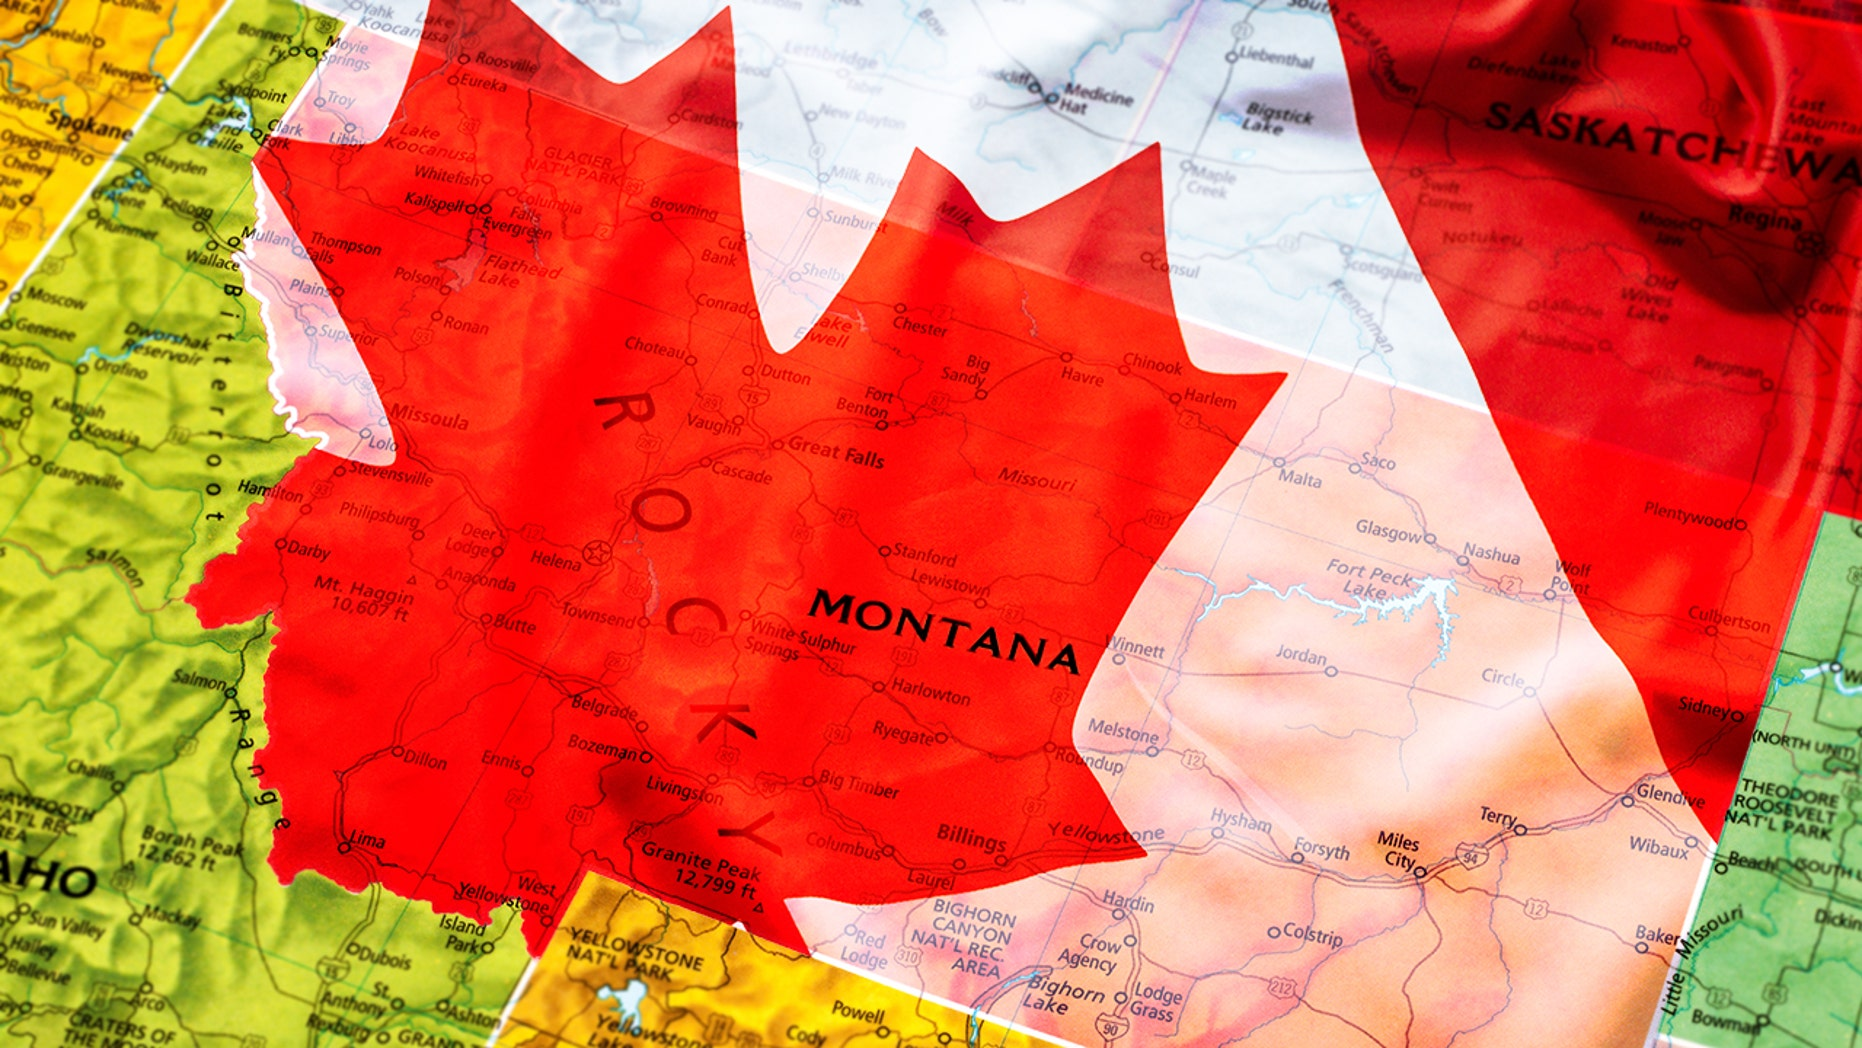 But Why Would Canada Pay $1 Trillion For Montana?